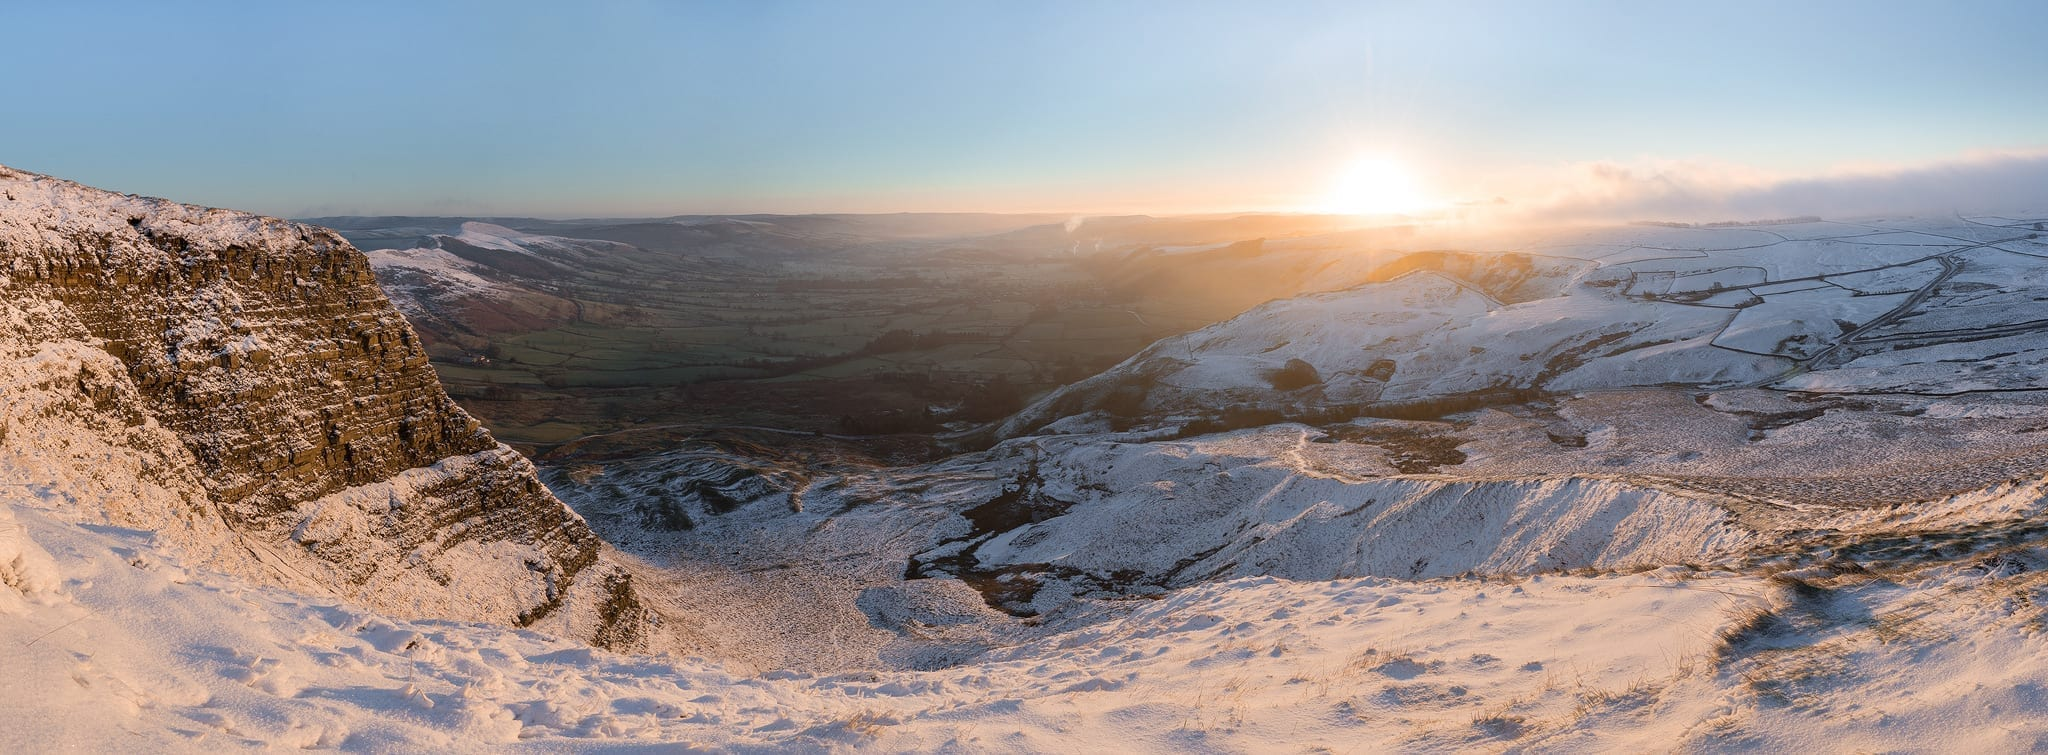 Mam Tor Winter Panoramic from the landslip - Mam Tor Photography Location Guide